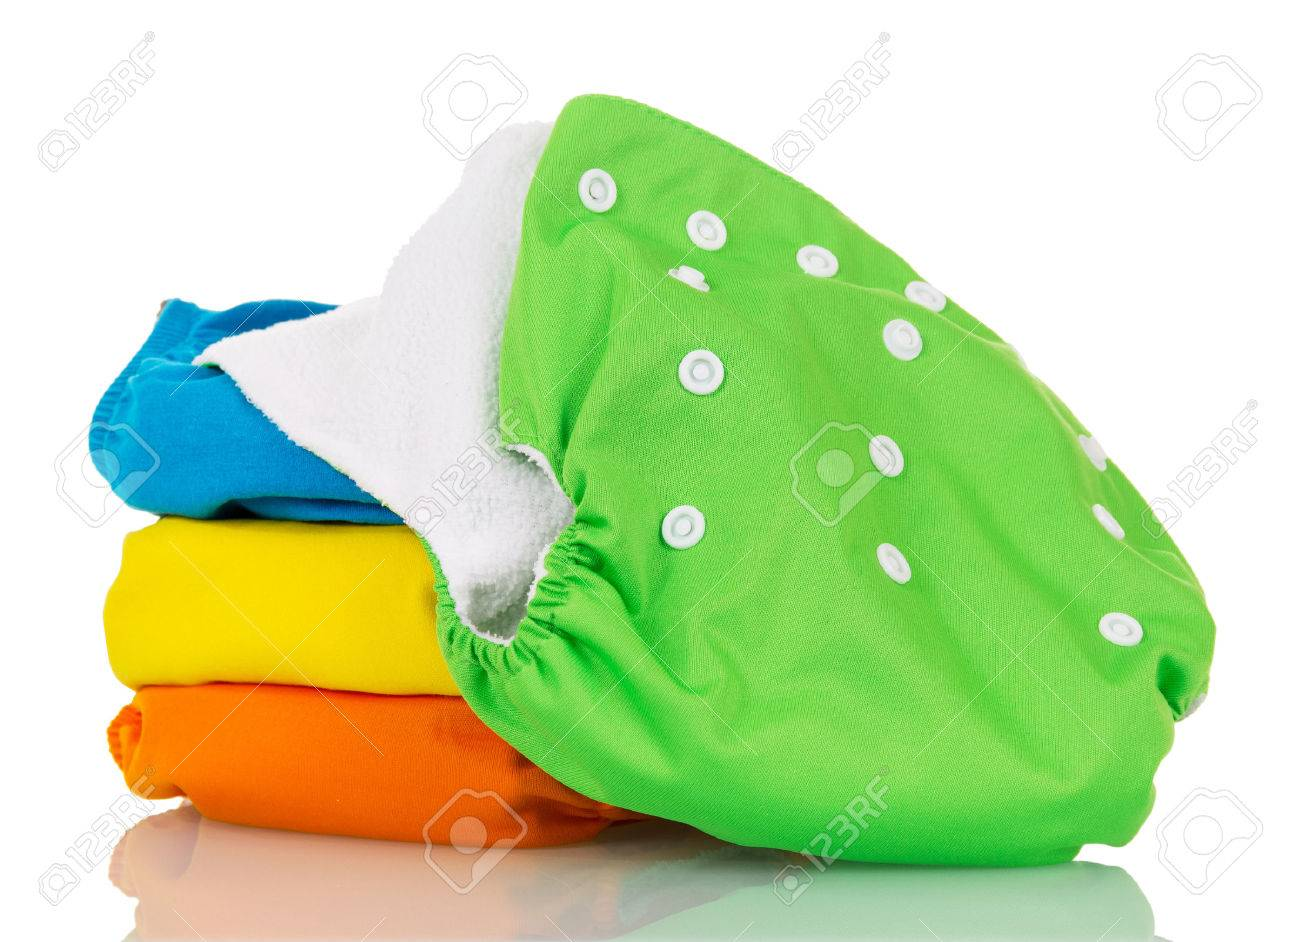 Organic cloth diapers isolated on white background. - 67527316